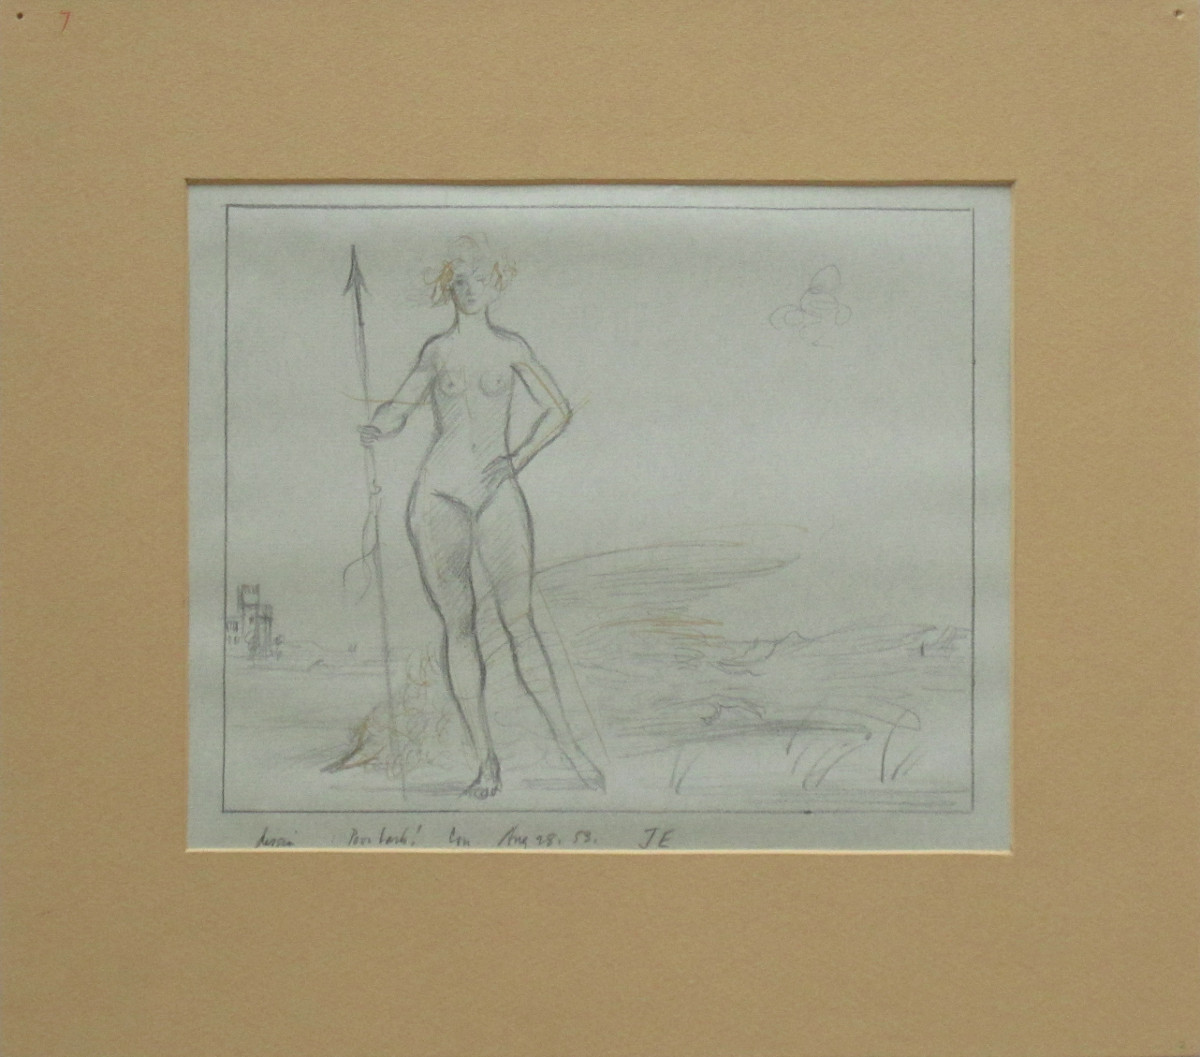 DESIGN FOR POOR LARK!, 1953, Pencil and Ink on Blue Paper, 9 1/2 x 11 1/4""